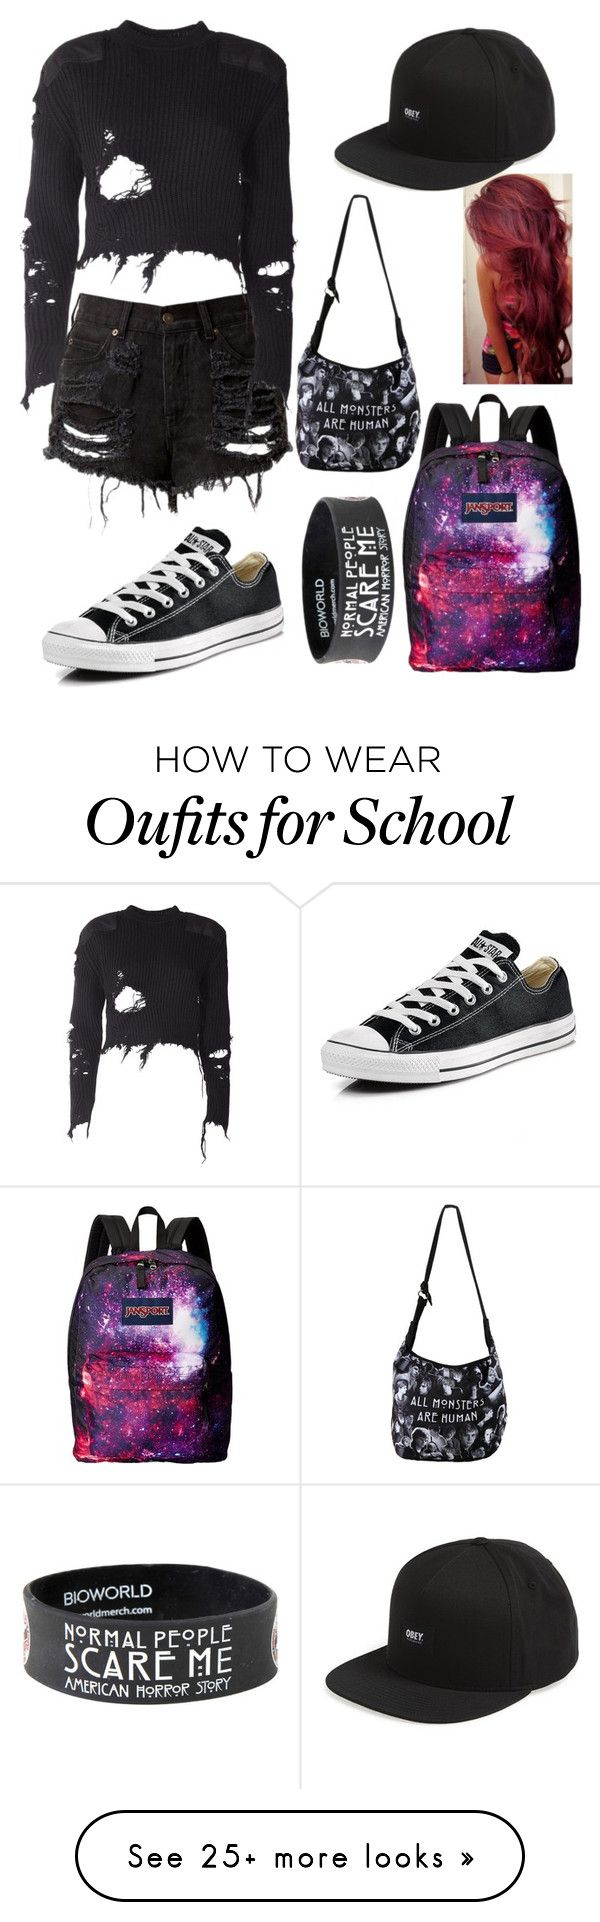 """""""School outfit"""" by musiclover135 on Polyvore featuring Converse, JanSport, adidas Originals and OBEY Clothing"""